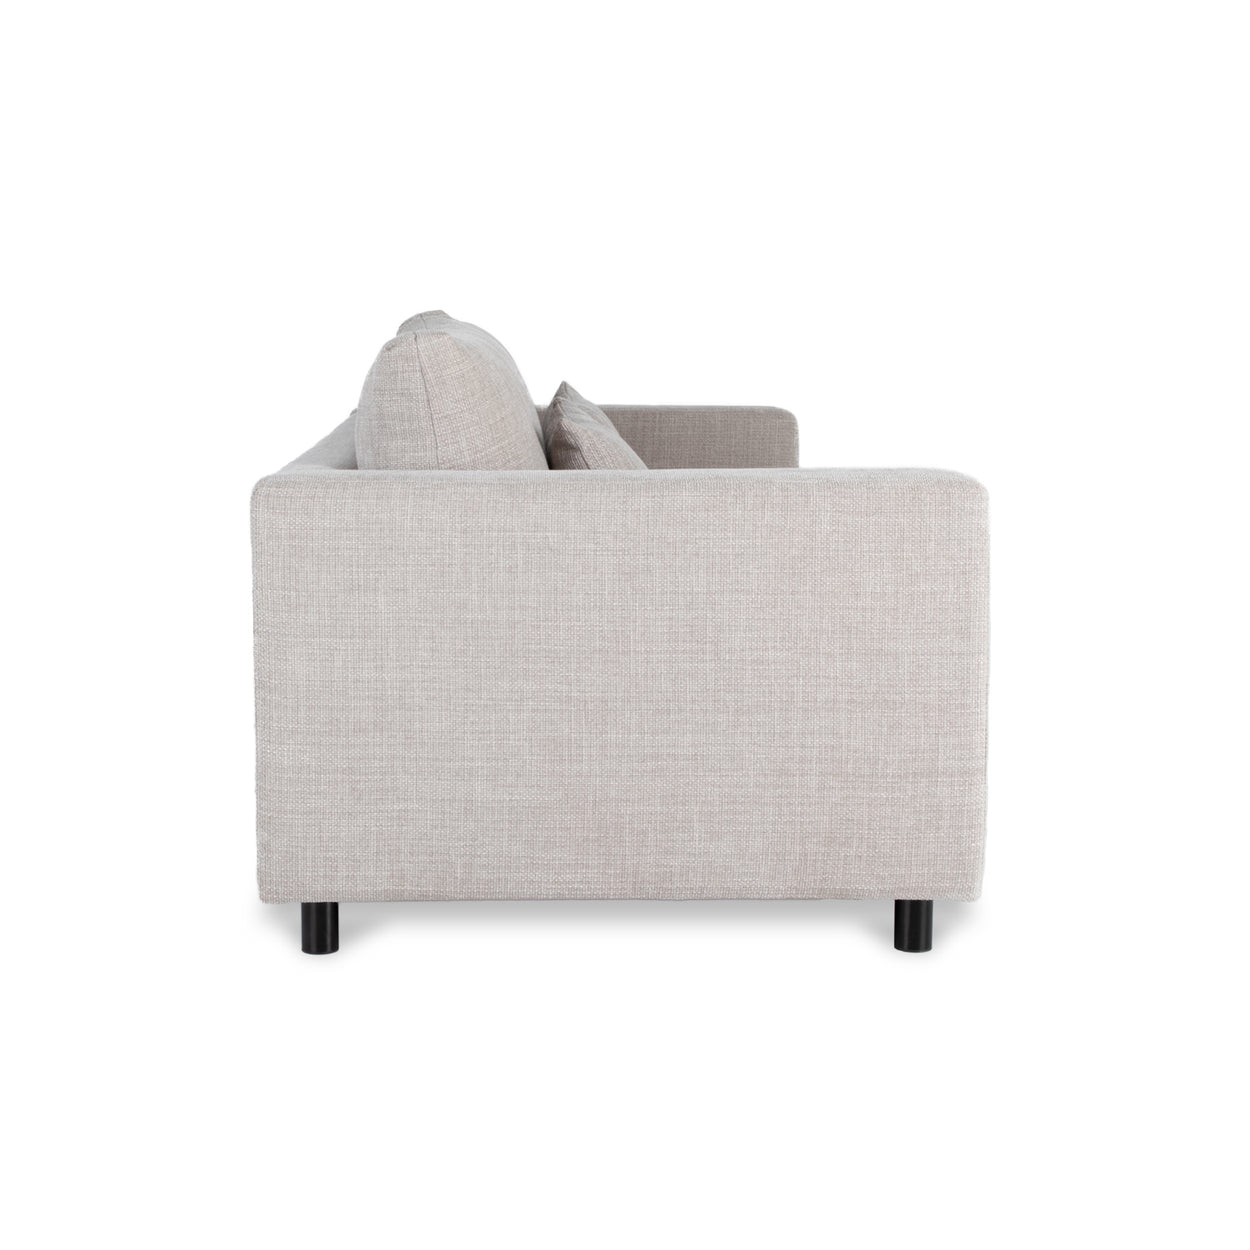 ALEX - 3 Seat Sofa in Hastings Sand